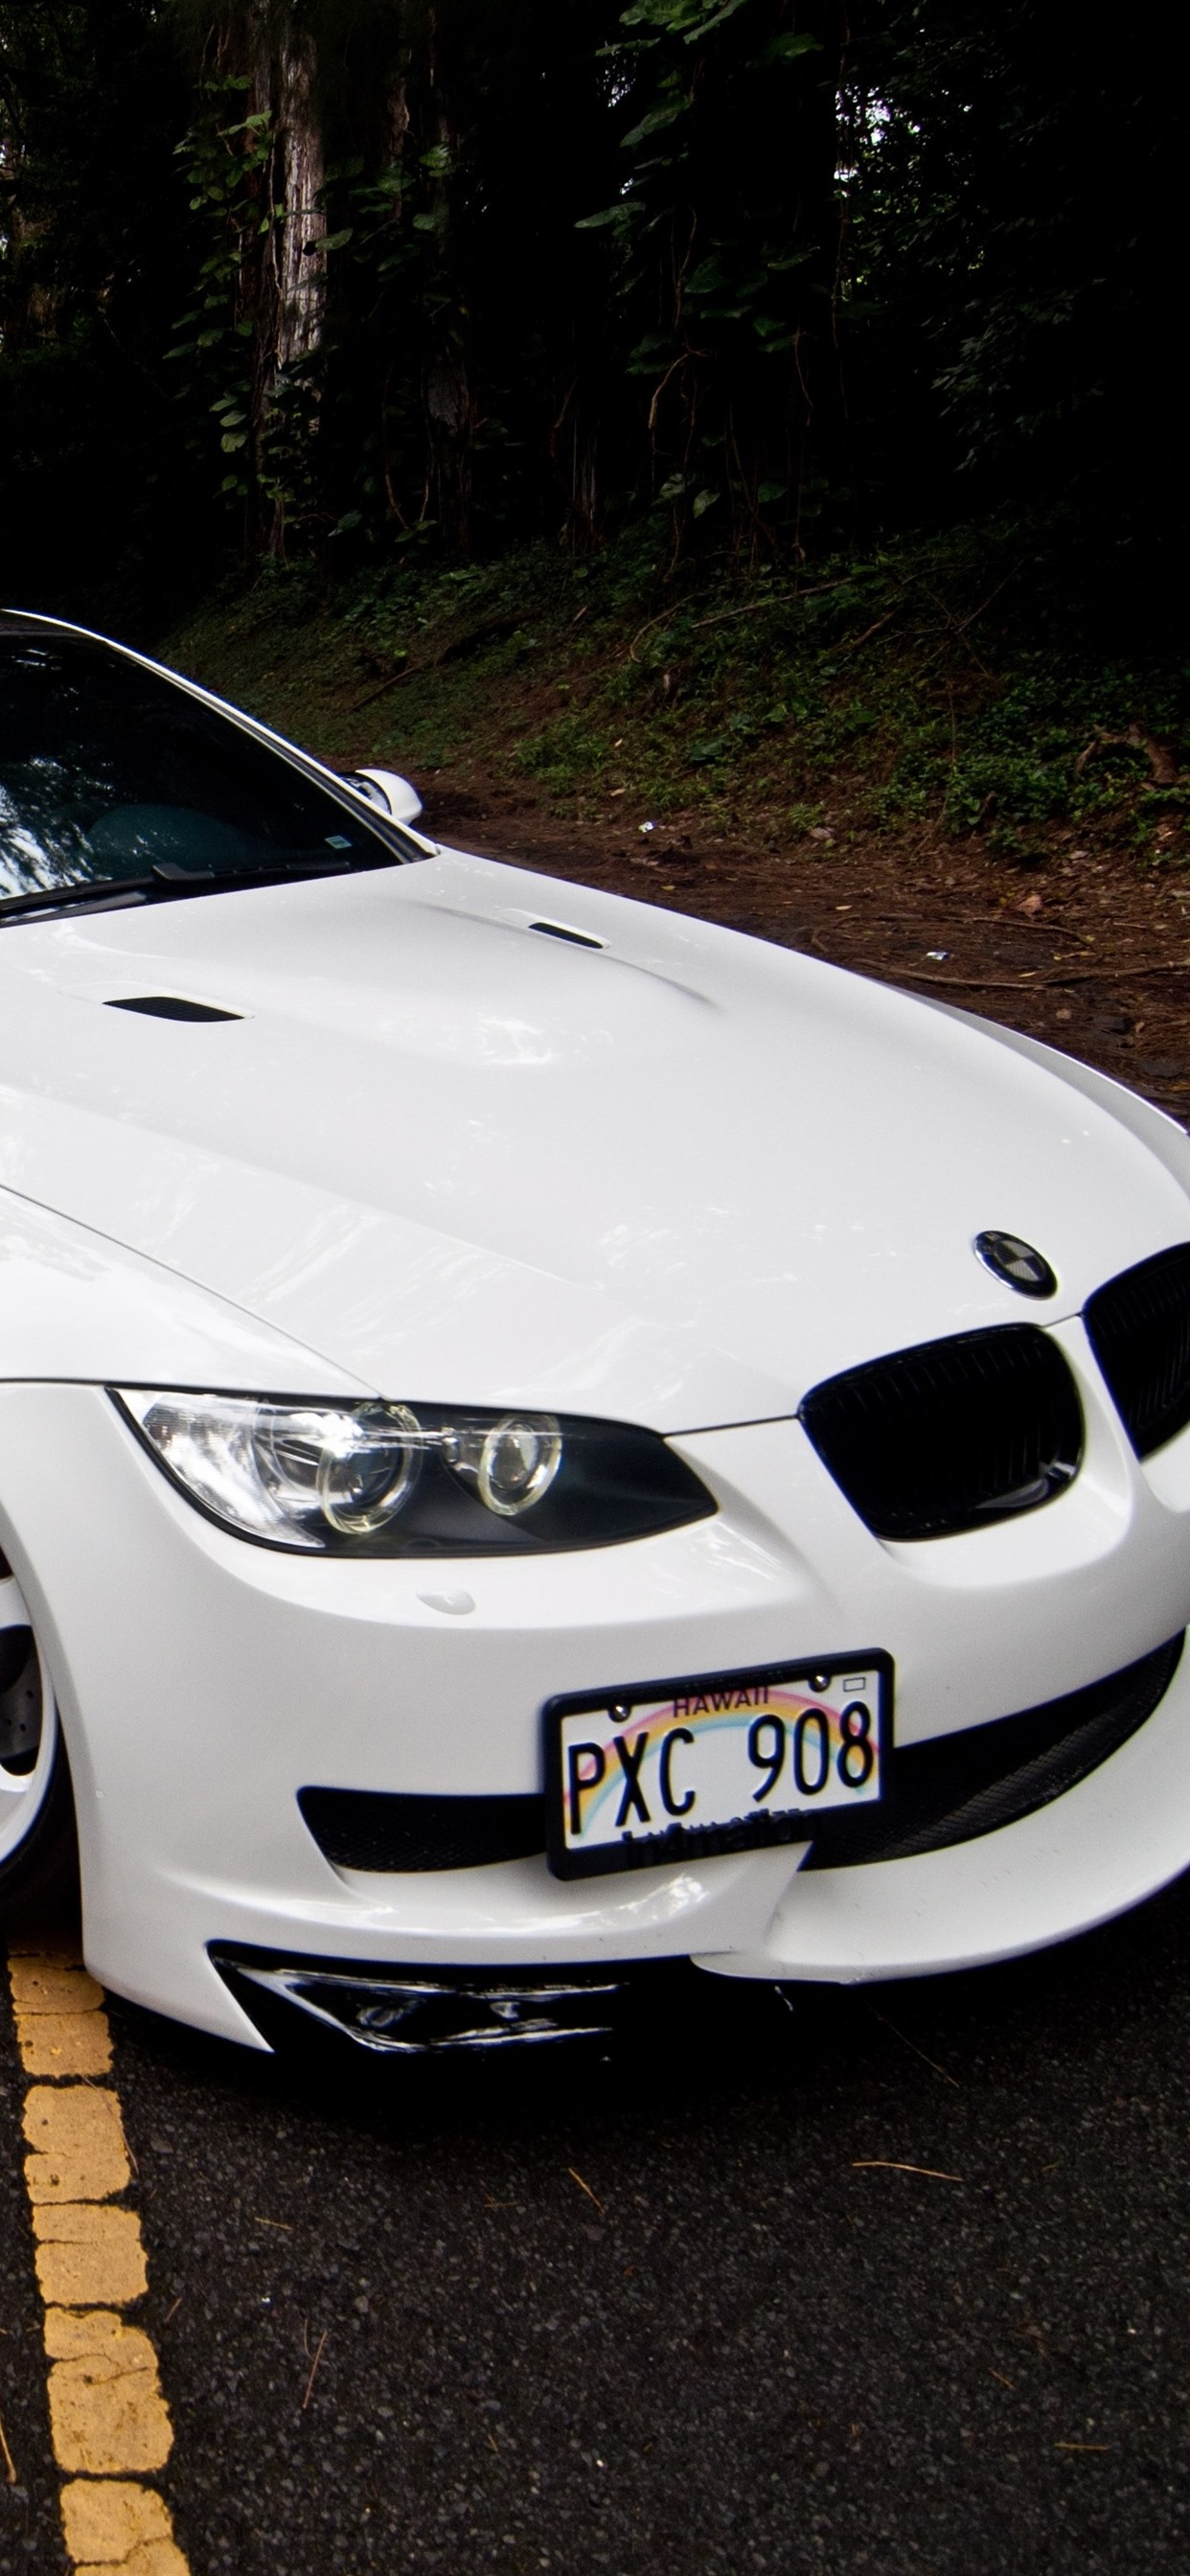 Bmw M3 E92 White Car Front View Road 1242x2688 Iphone Xs